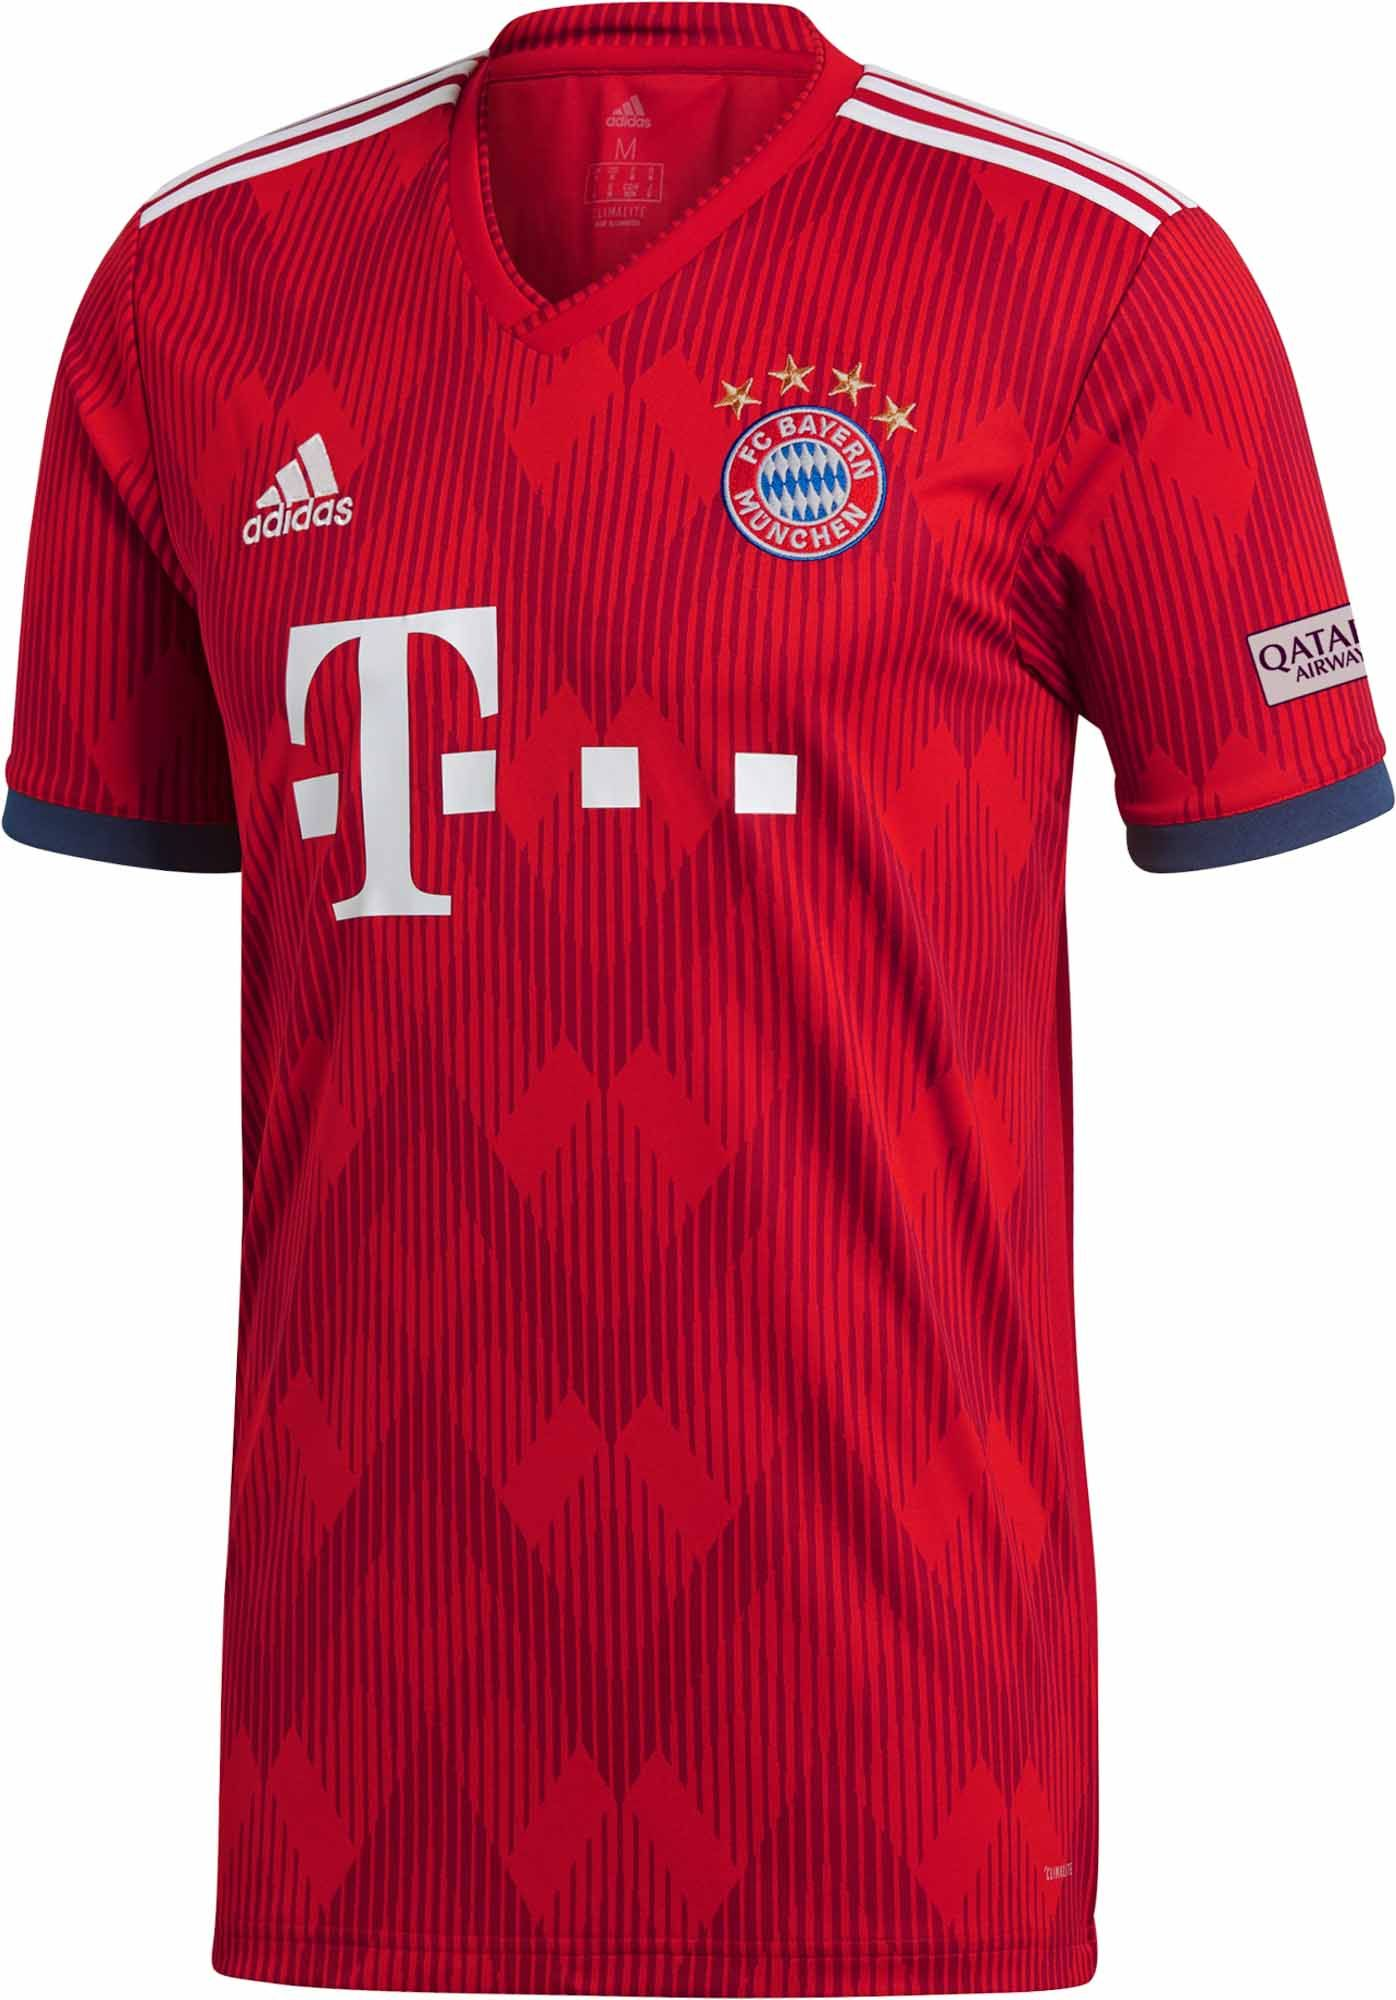 d82d19963d9 2018 19 adidas FC Bayern Home Jersey. Buy it from SoccerPro